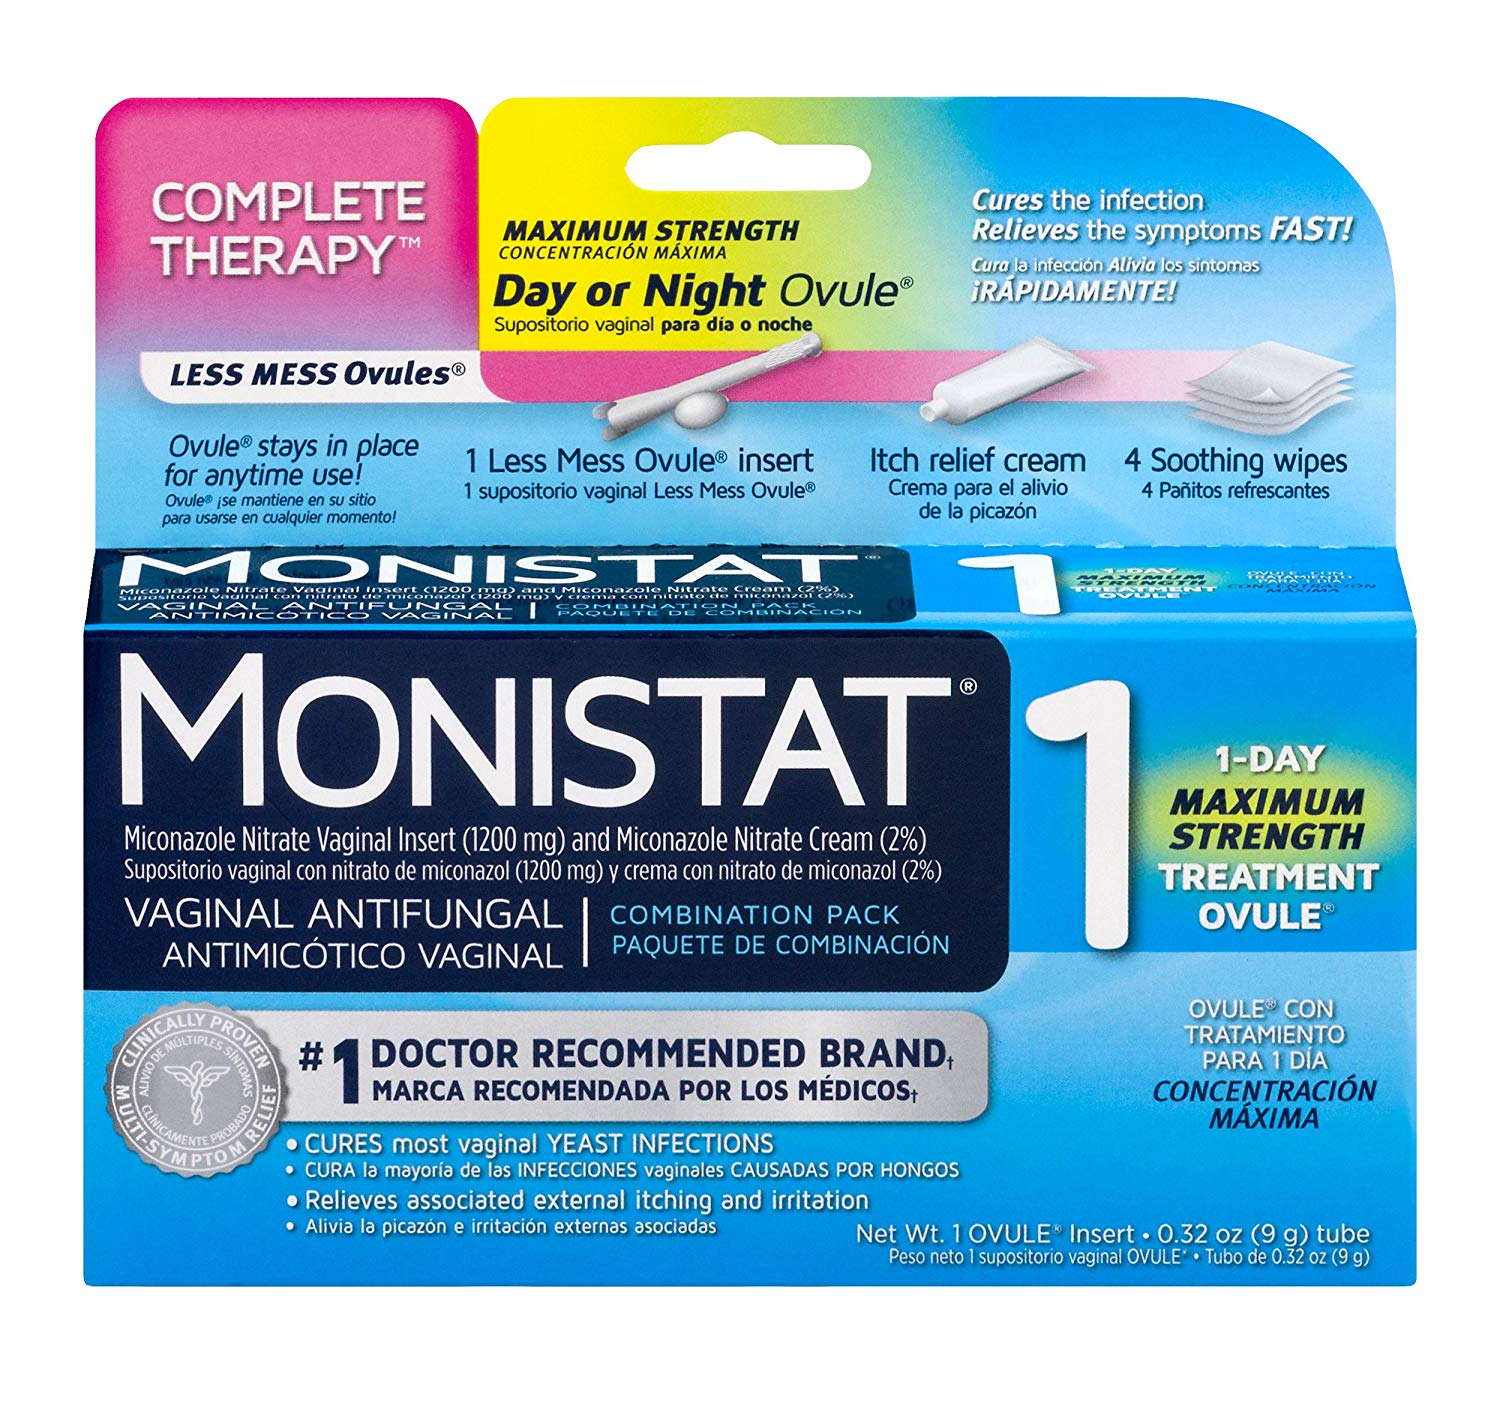 Which Monistat Works Best For Yeast Infection?